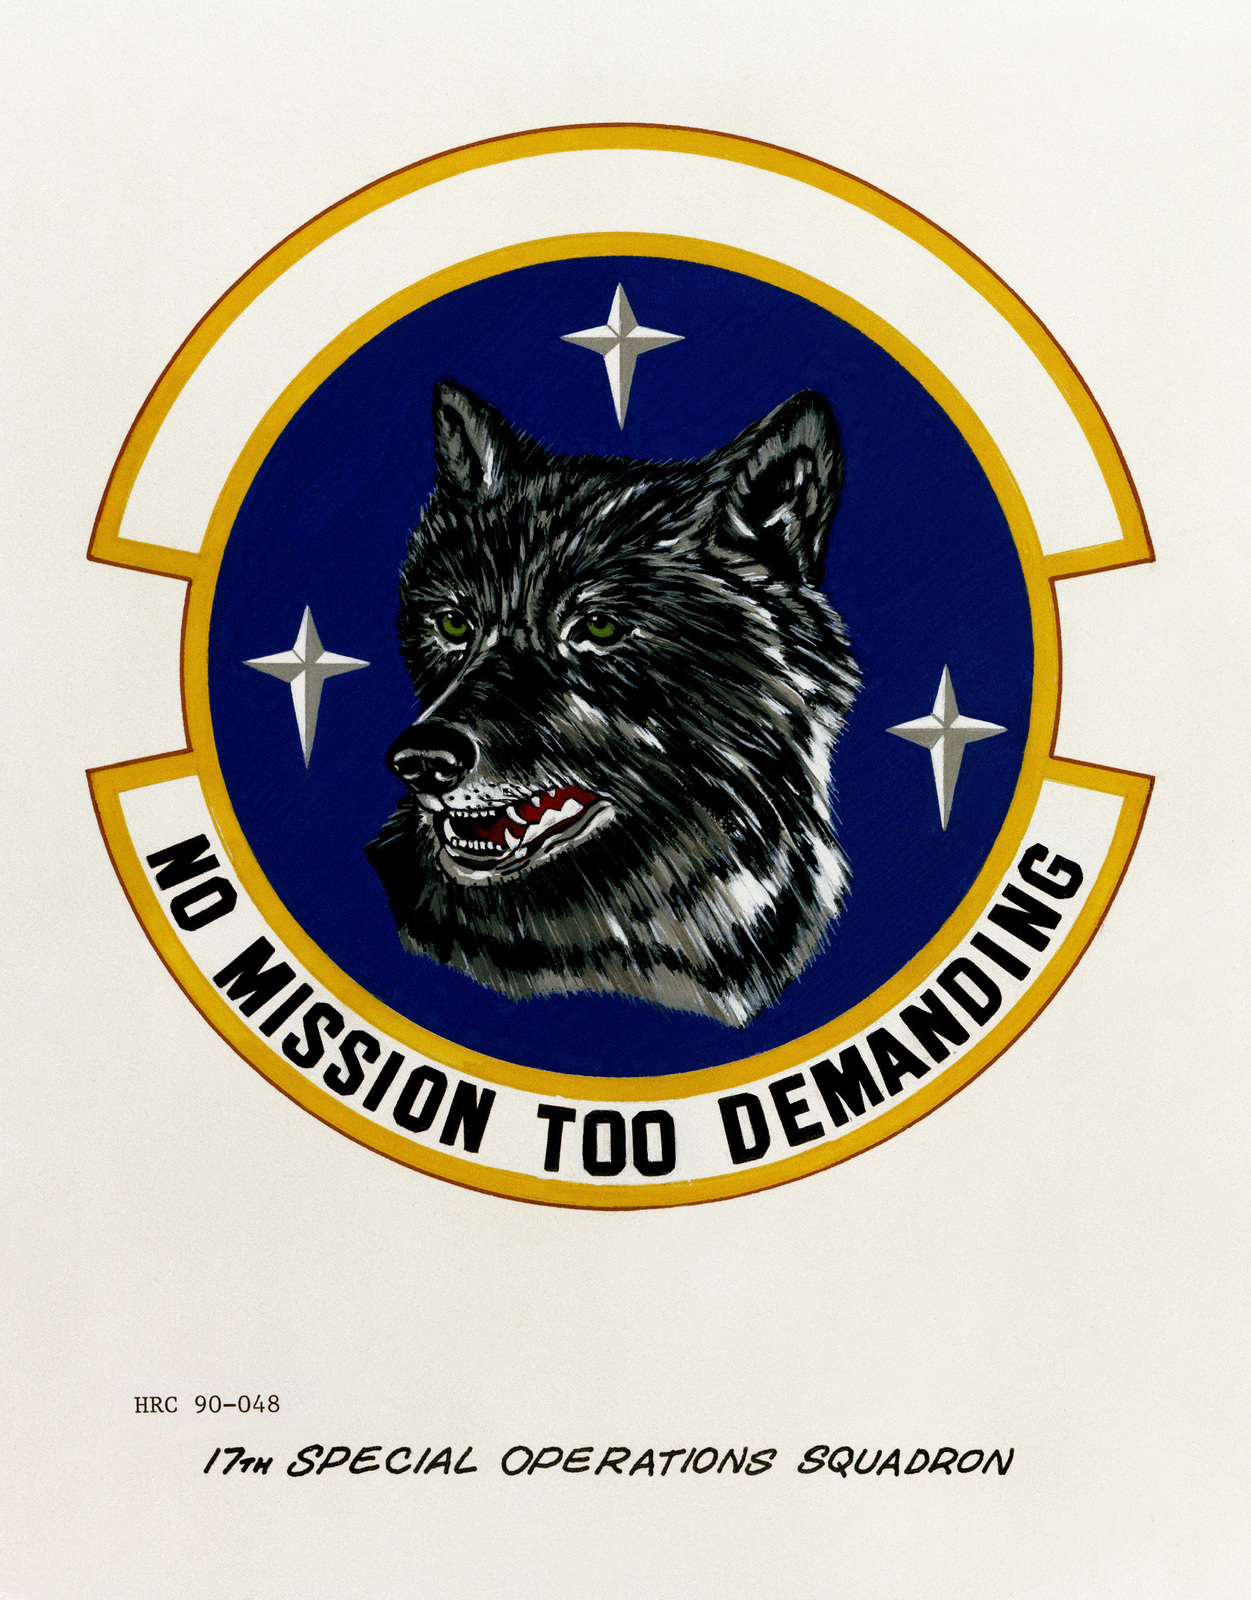 Approved insignia for:  17th Special Operations Squadron